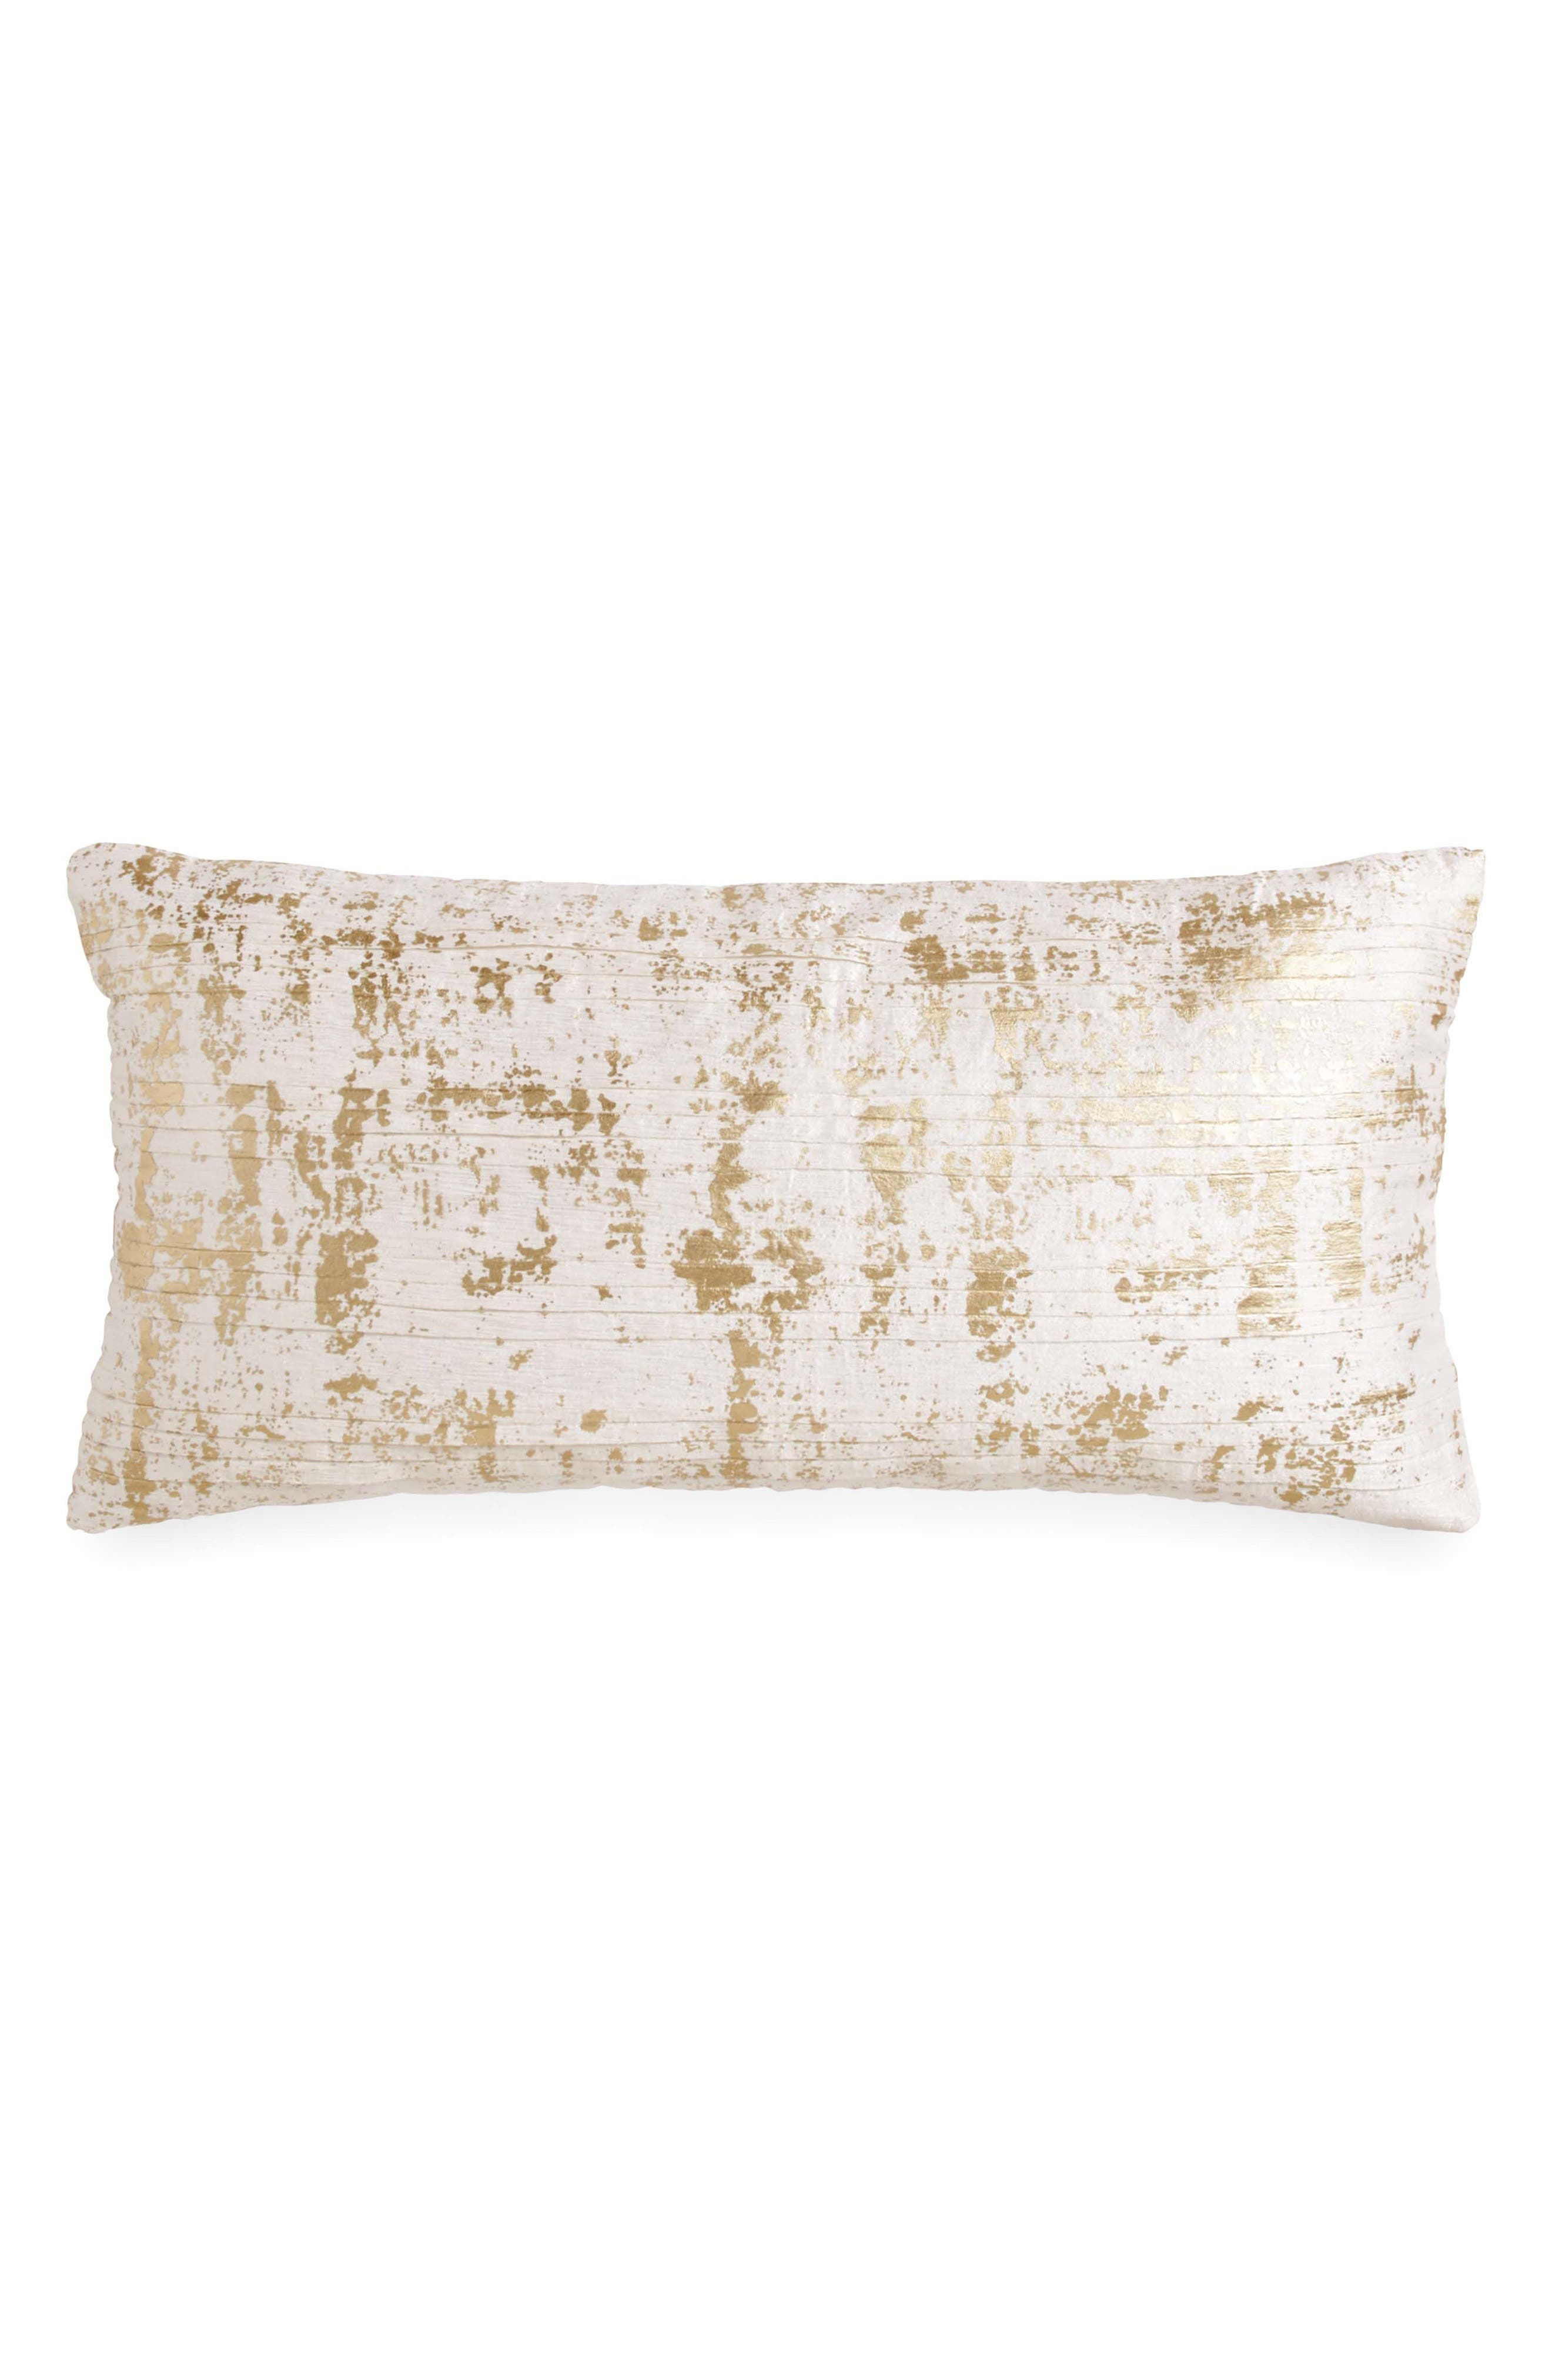 Opal Essence Pillow,                             Main thumbnail 1, color,                             IVORY